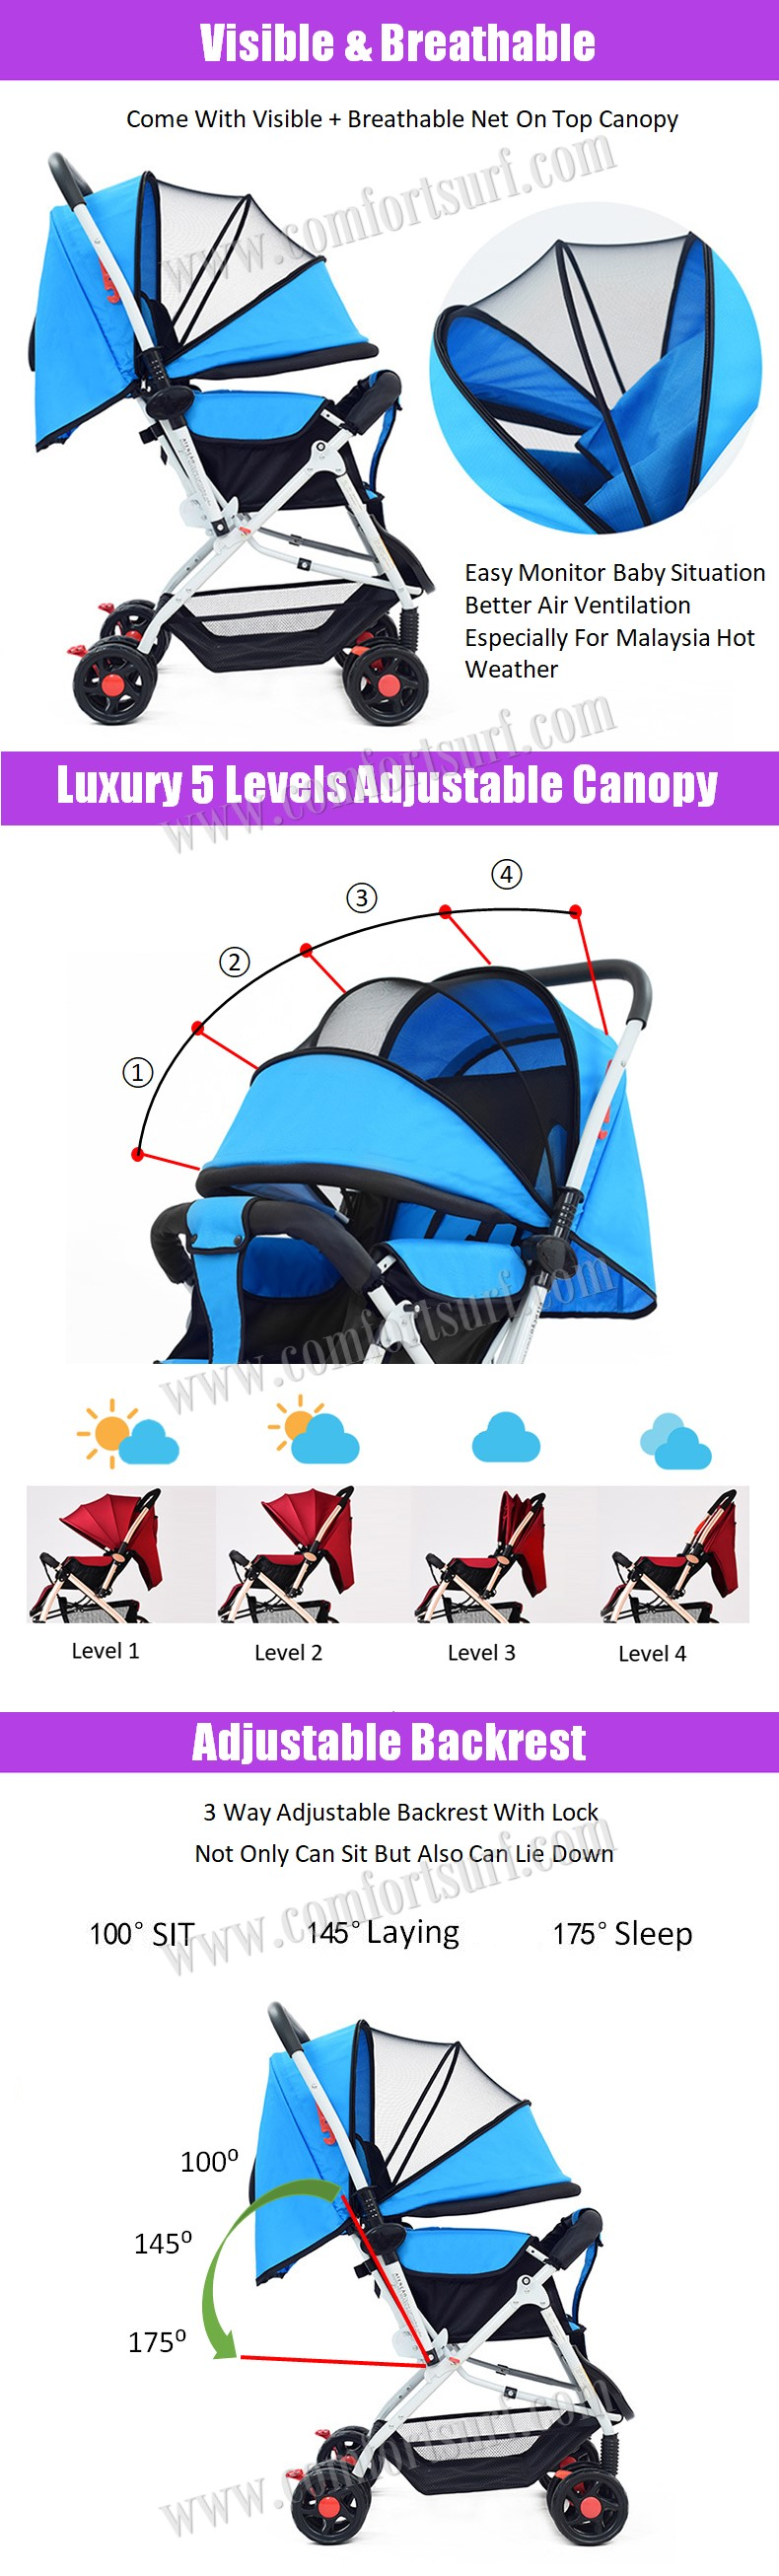 CSMall HY11 2 Two Way Facing Lightweight Baby Stroller Folding with 8X Wheels + Adjustable Backrest + Canopy + Front Suspension + Free 6 Gift